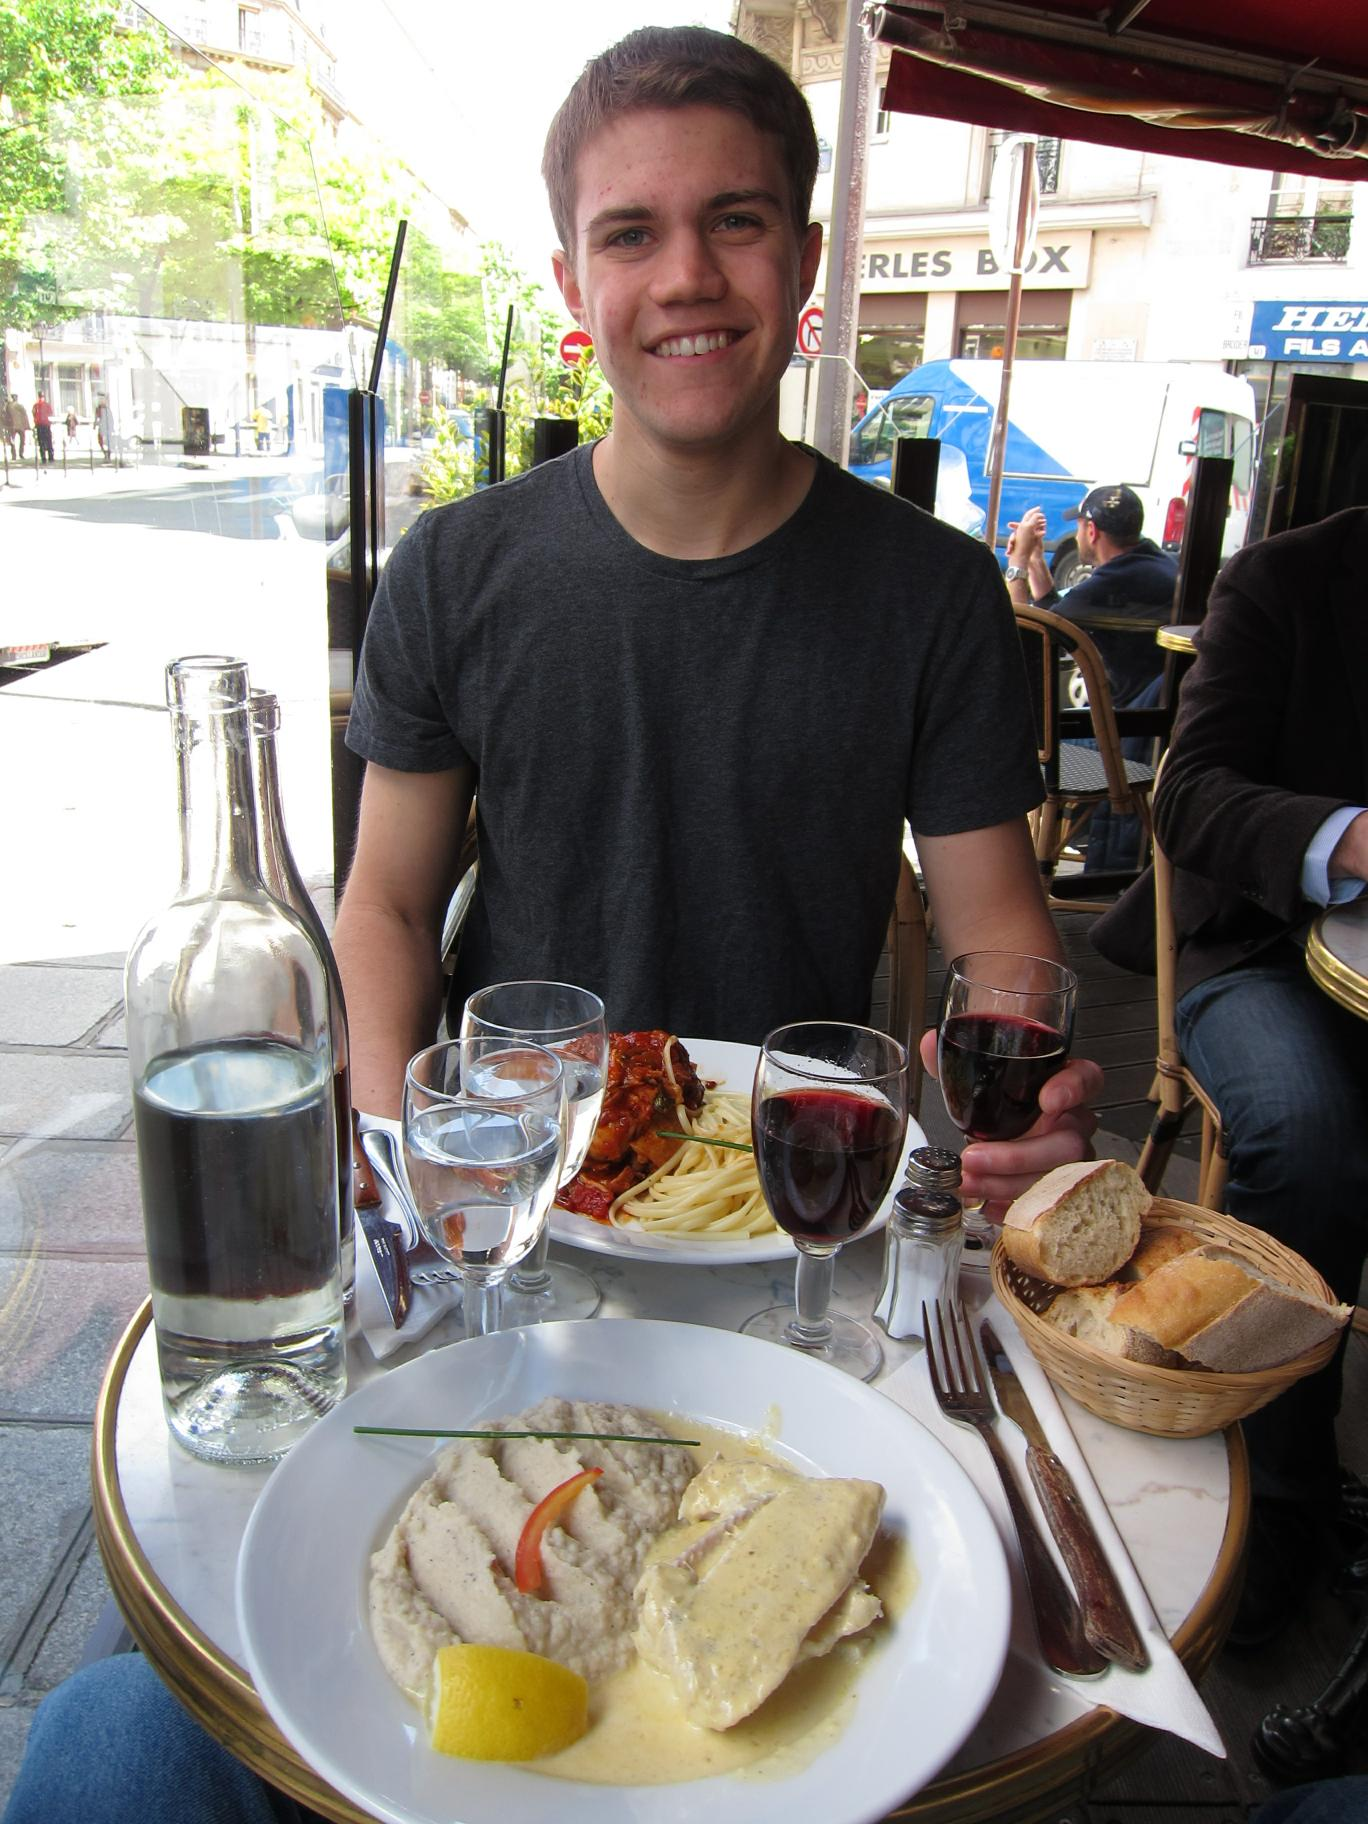 Alex with our lunch at L'Absinthe Café